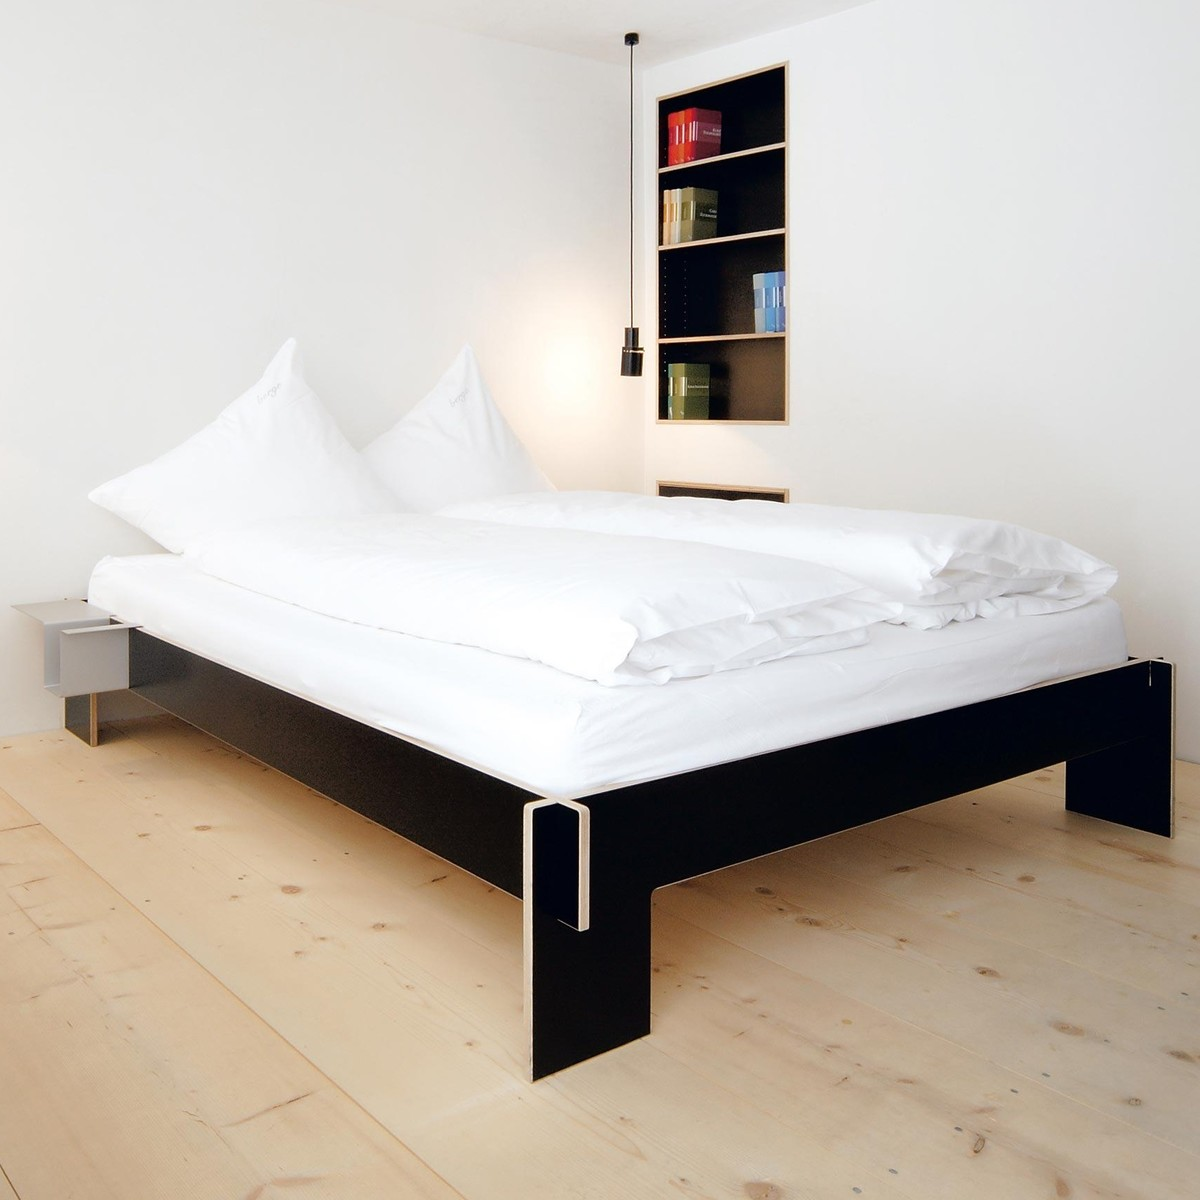 Moormann Design Moormann Siebenschläfer Bett Moormann Ambientedirect